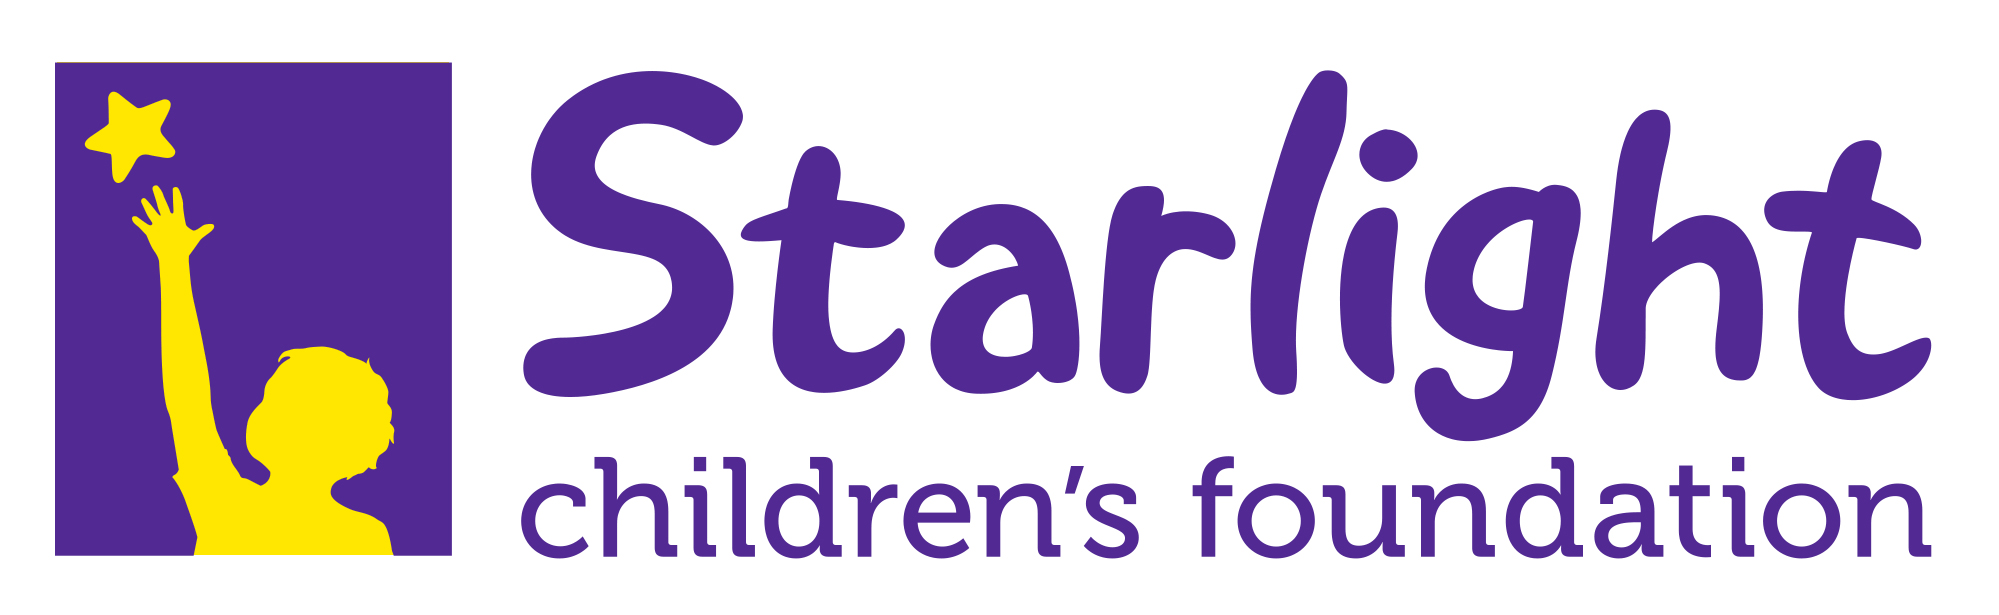 starlight childrens foundation logo.jpg